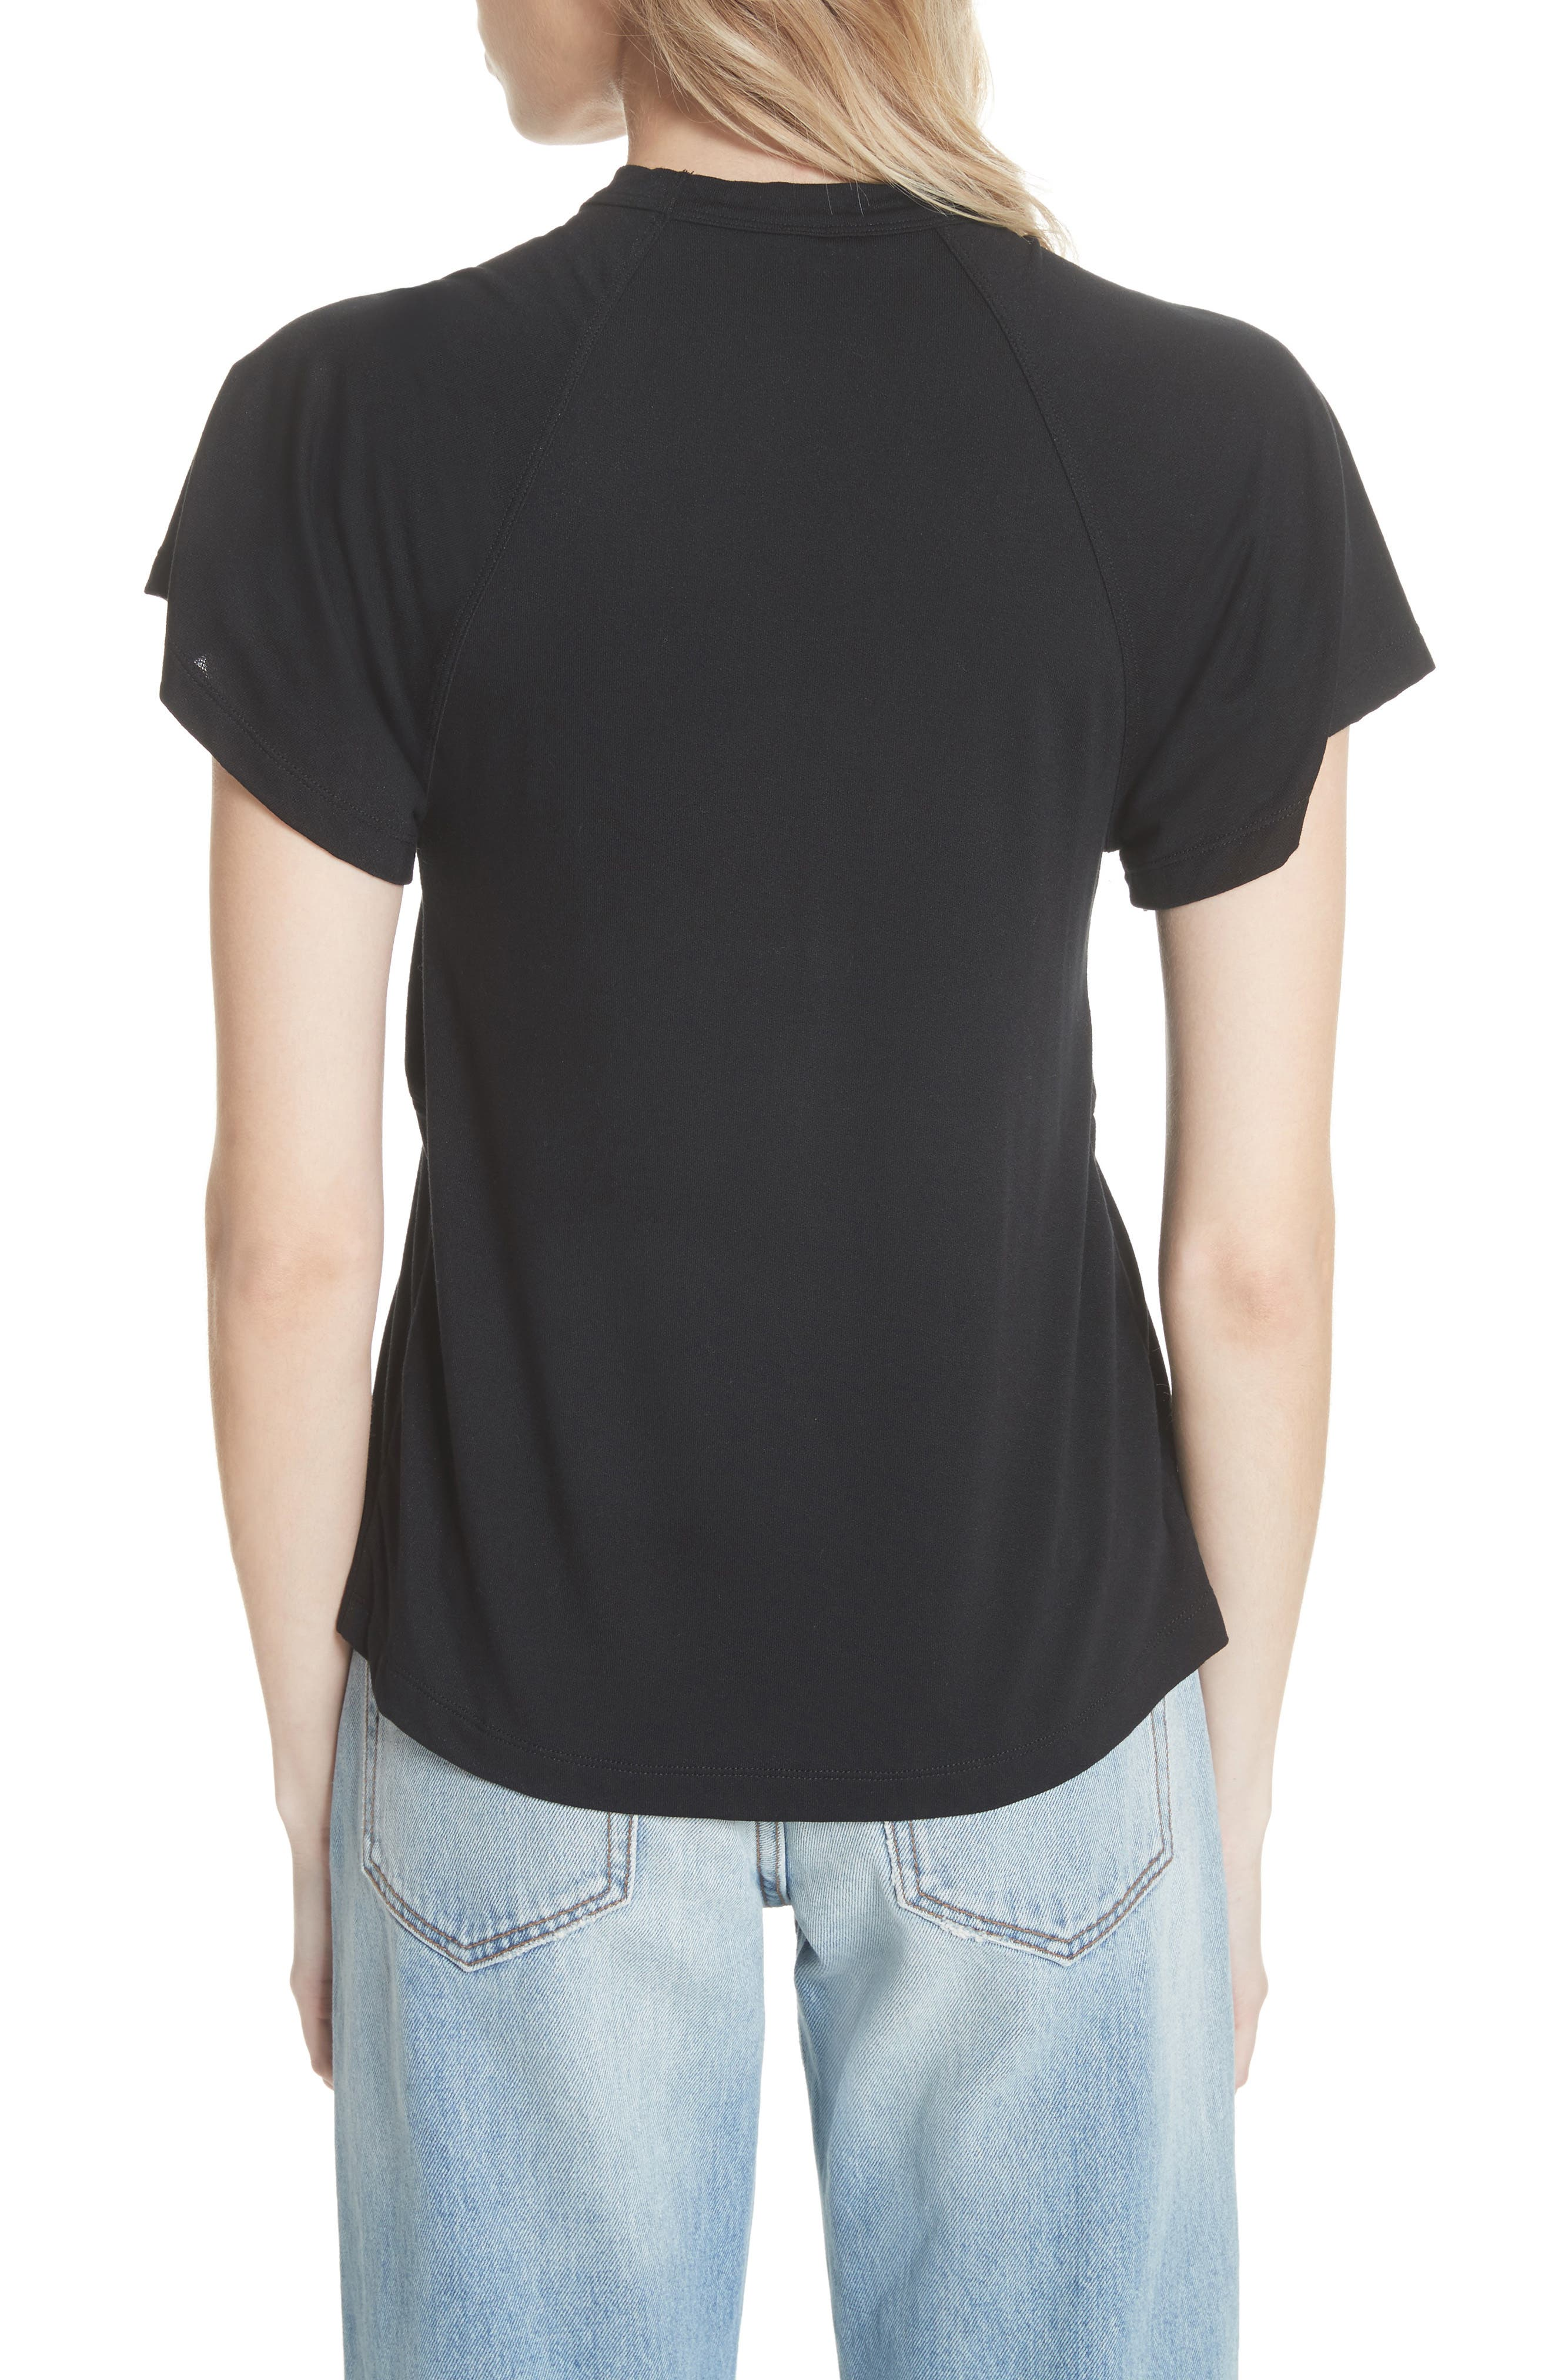 FREE PEOPLE,                             Just a Twist Top,                             Alternate thumbnail 2, color,                             001